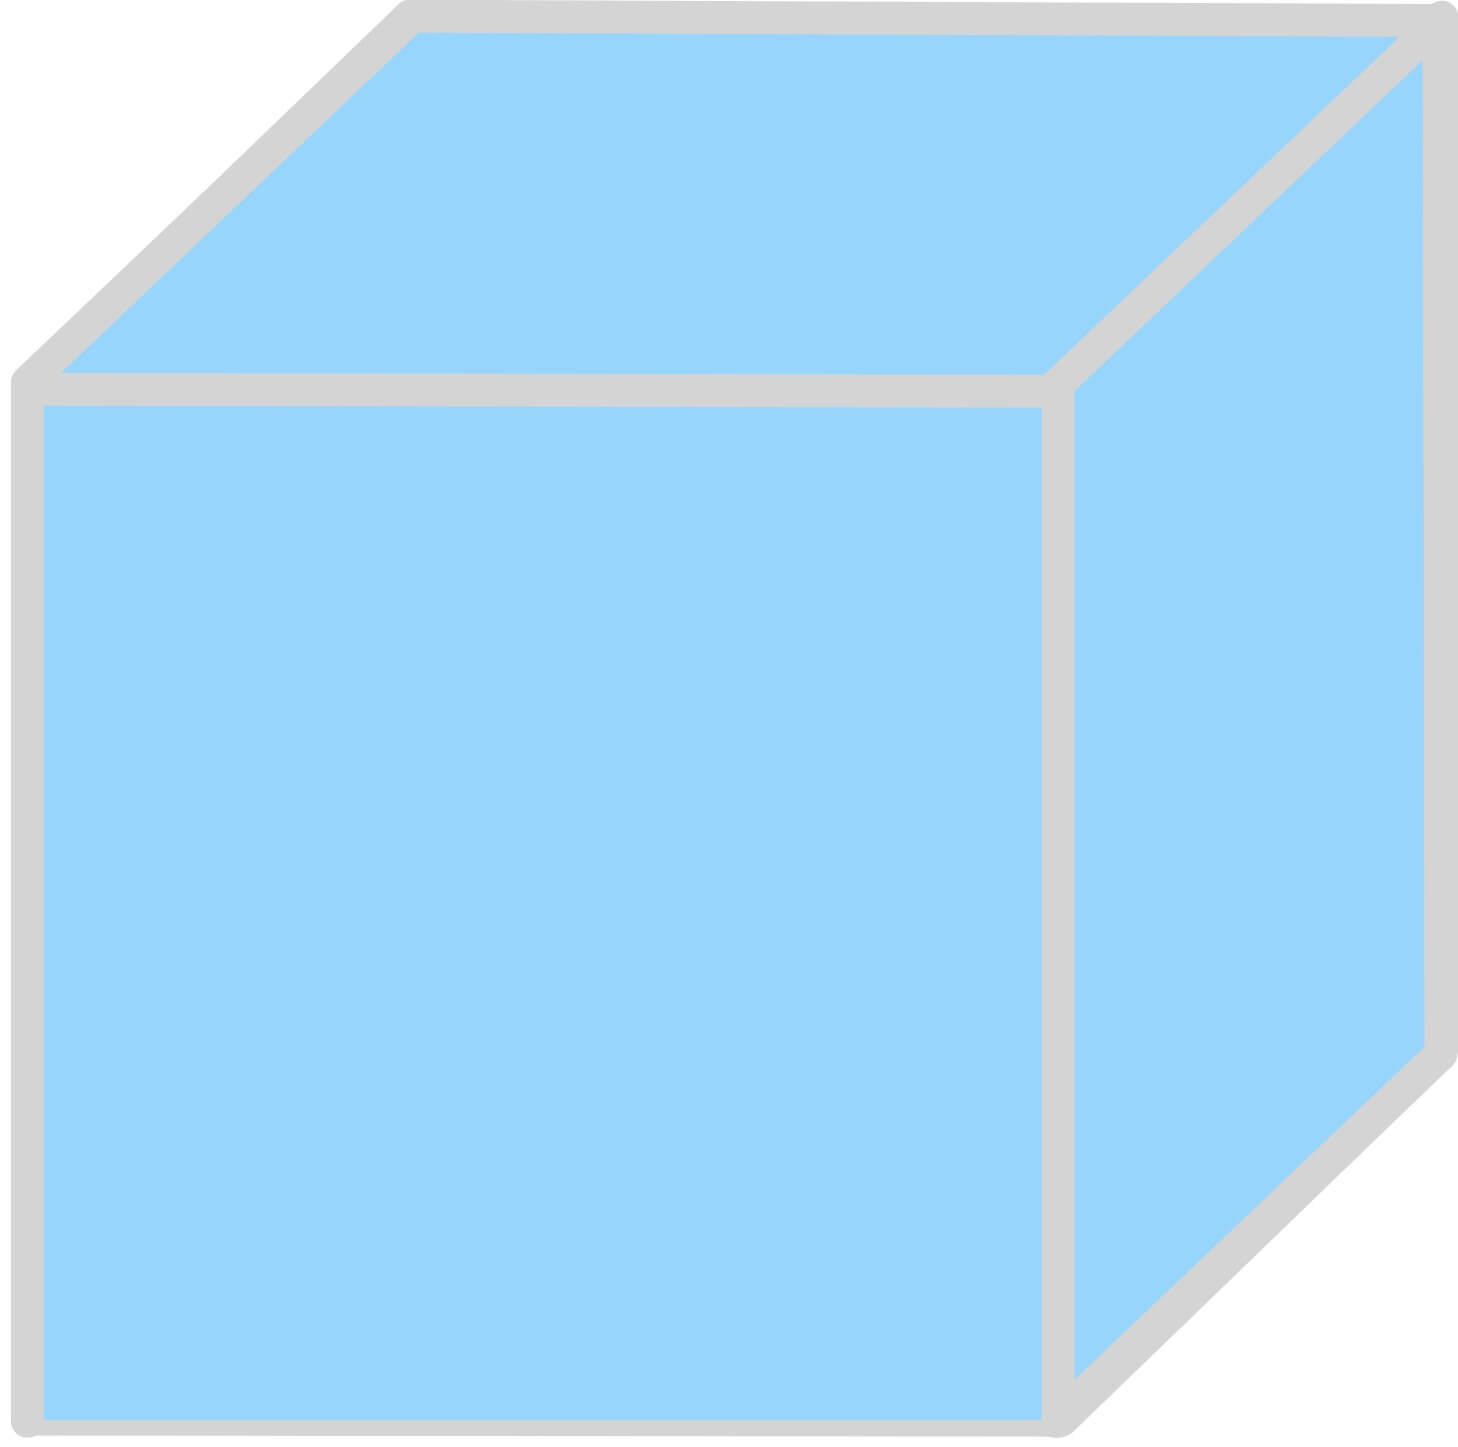 cube with all six sides solid